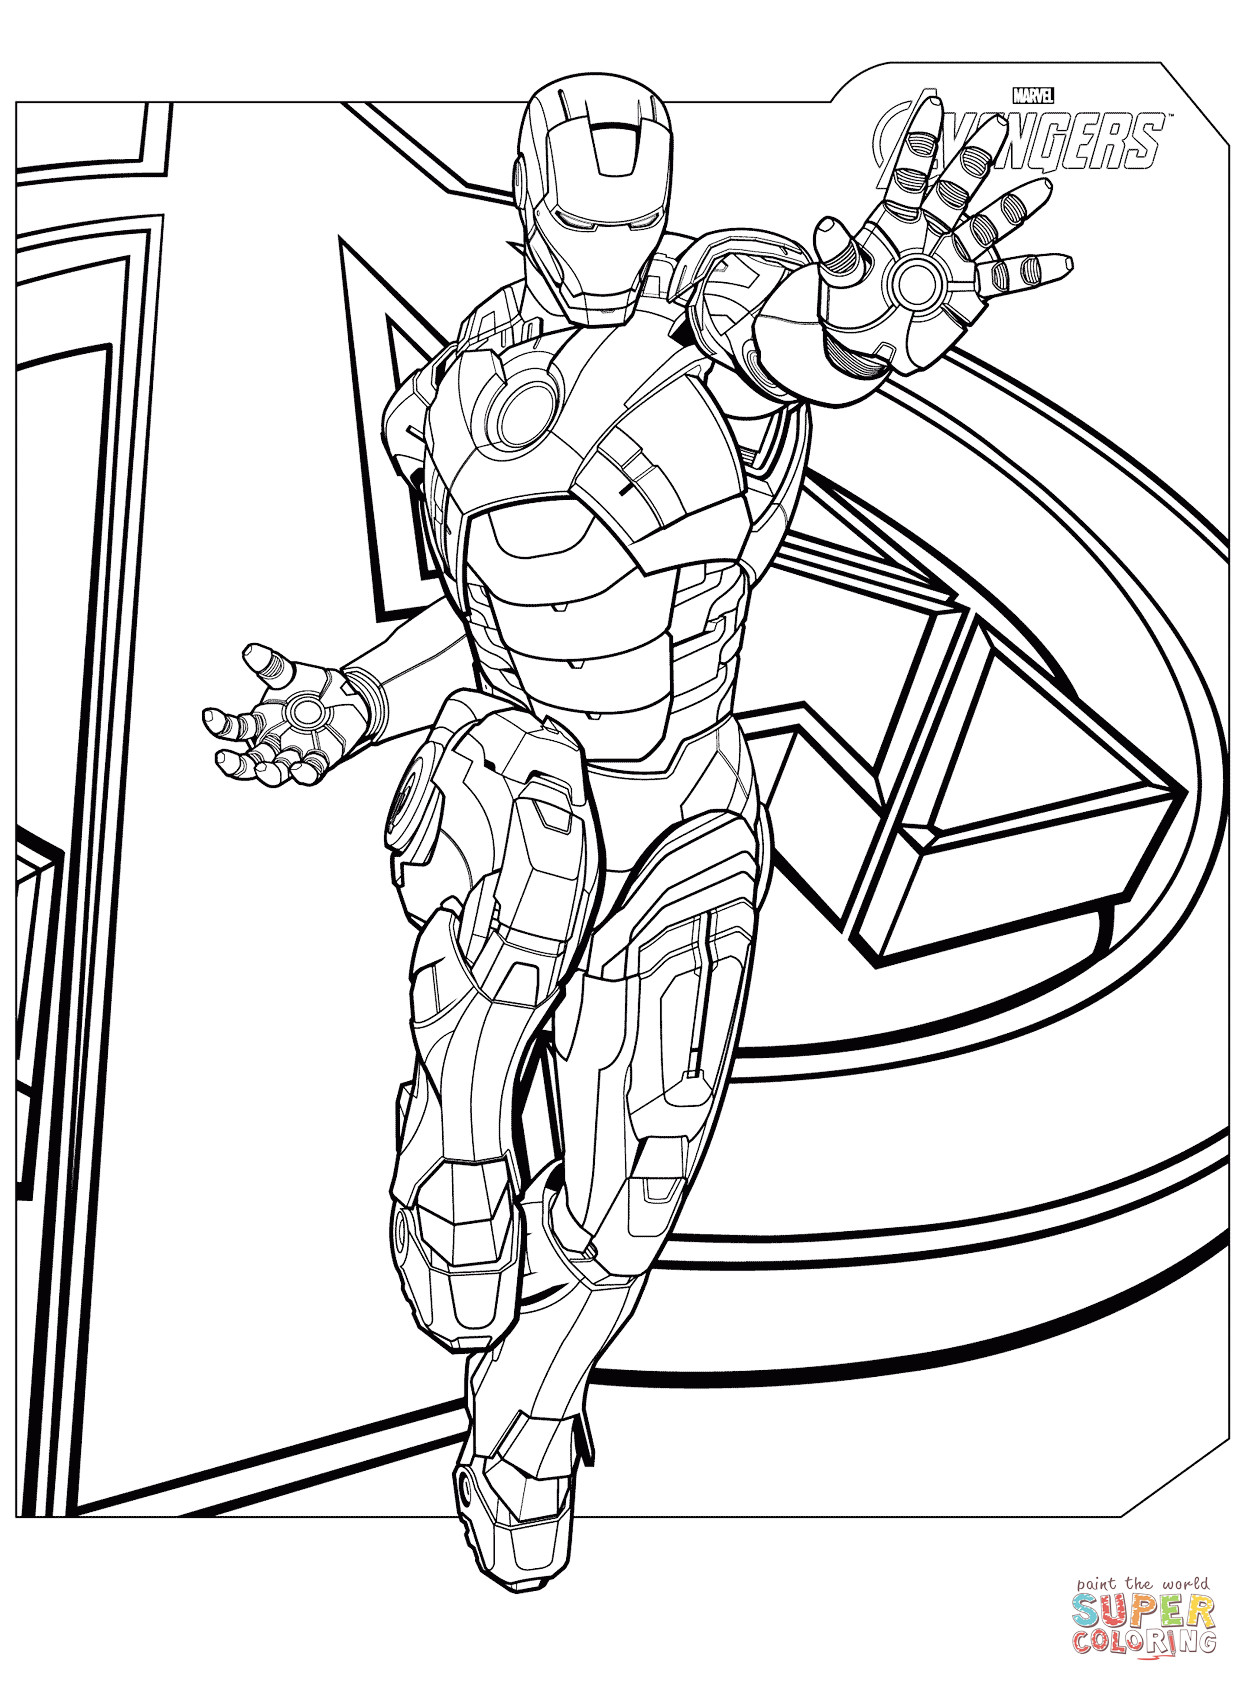 Coloring Pages Avengers  Avengers Iron Man coloring page